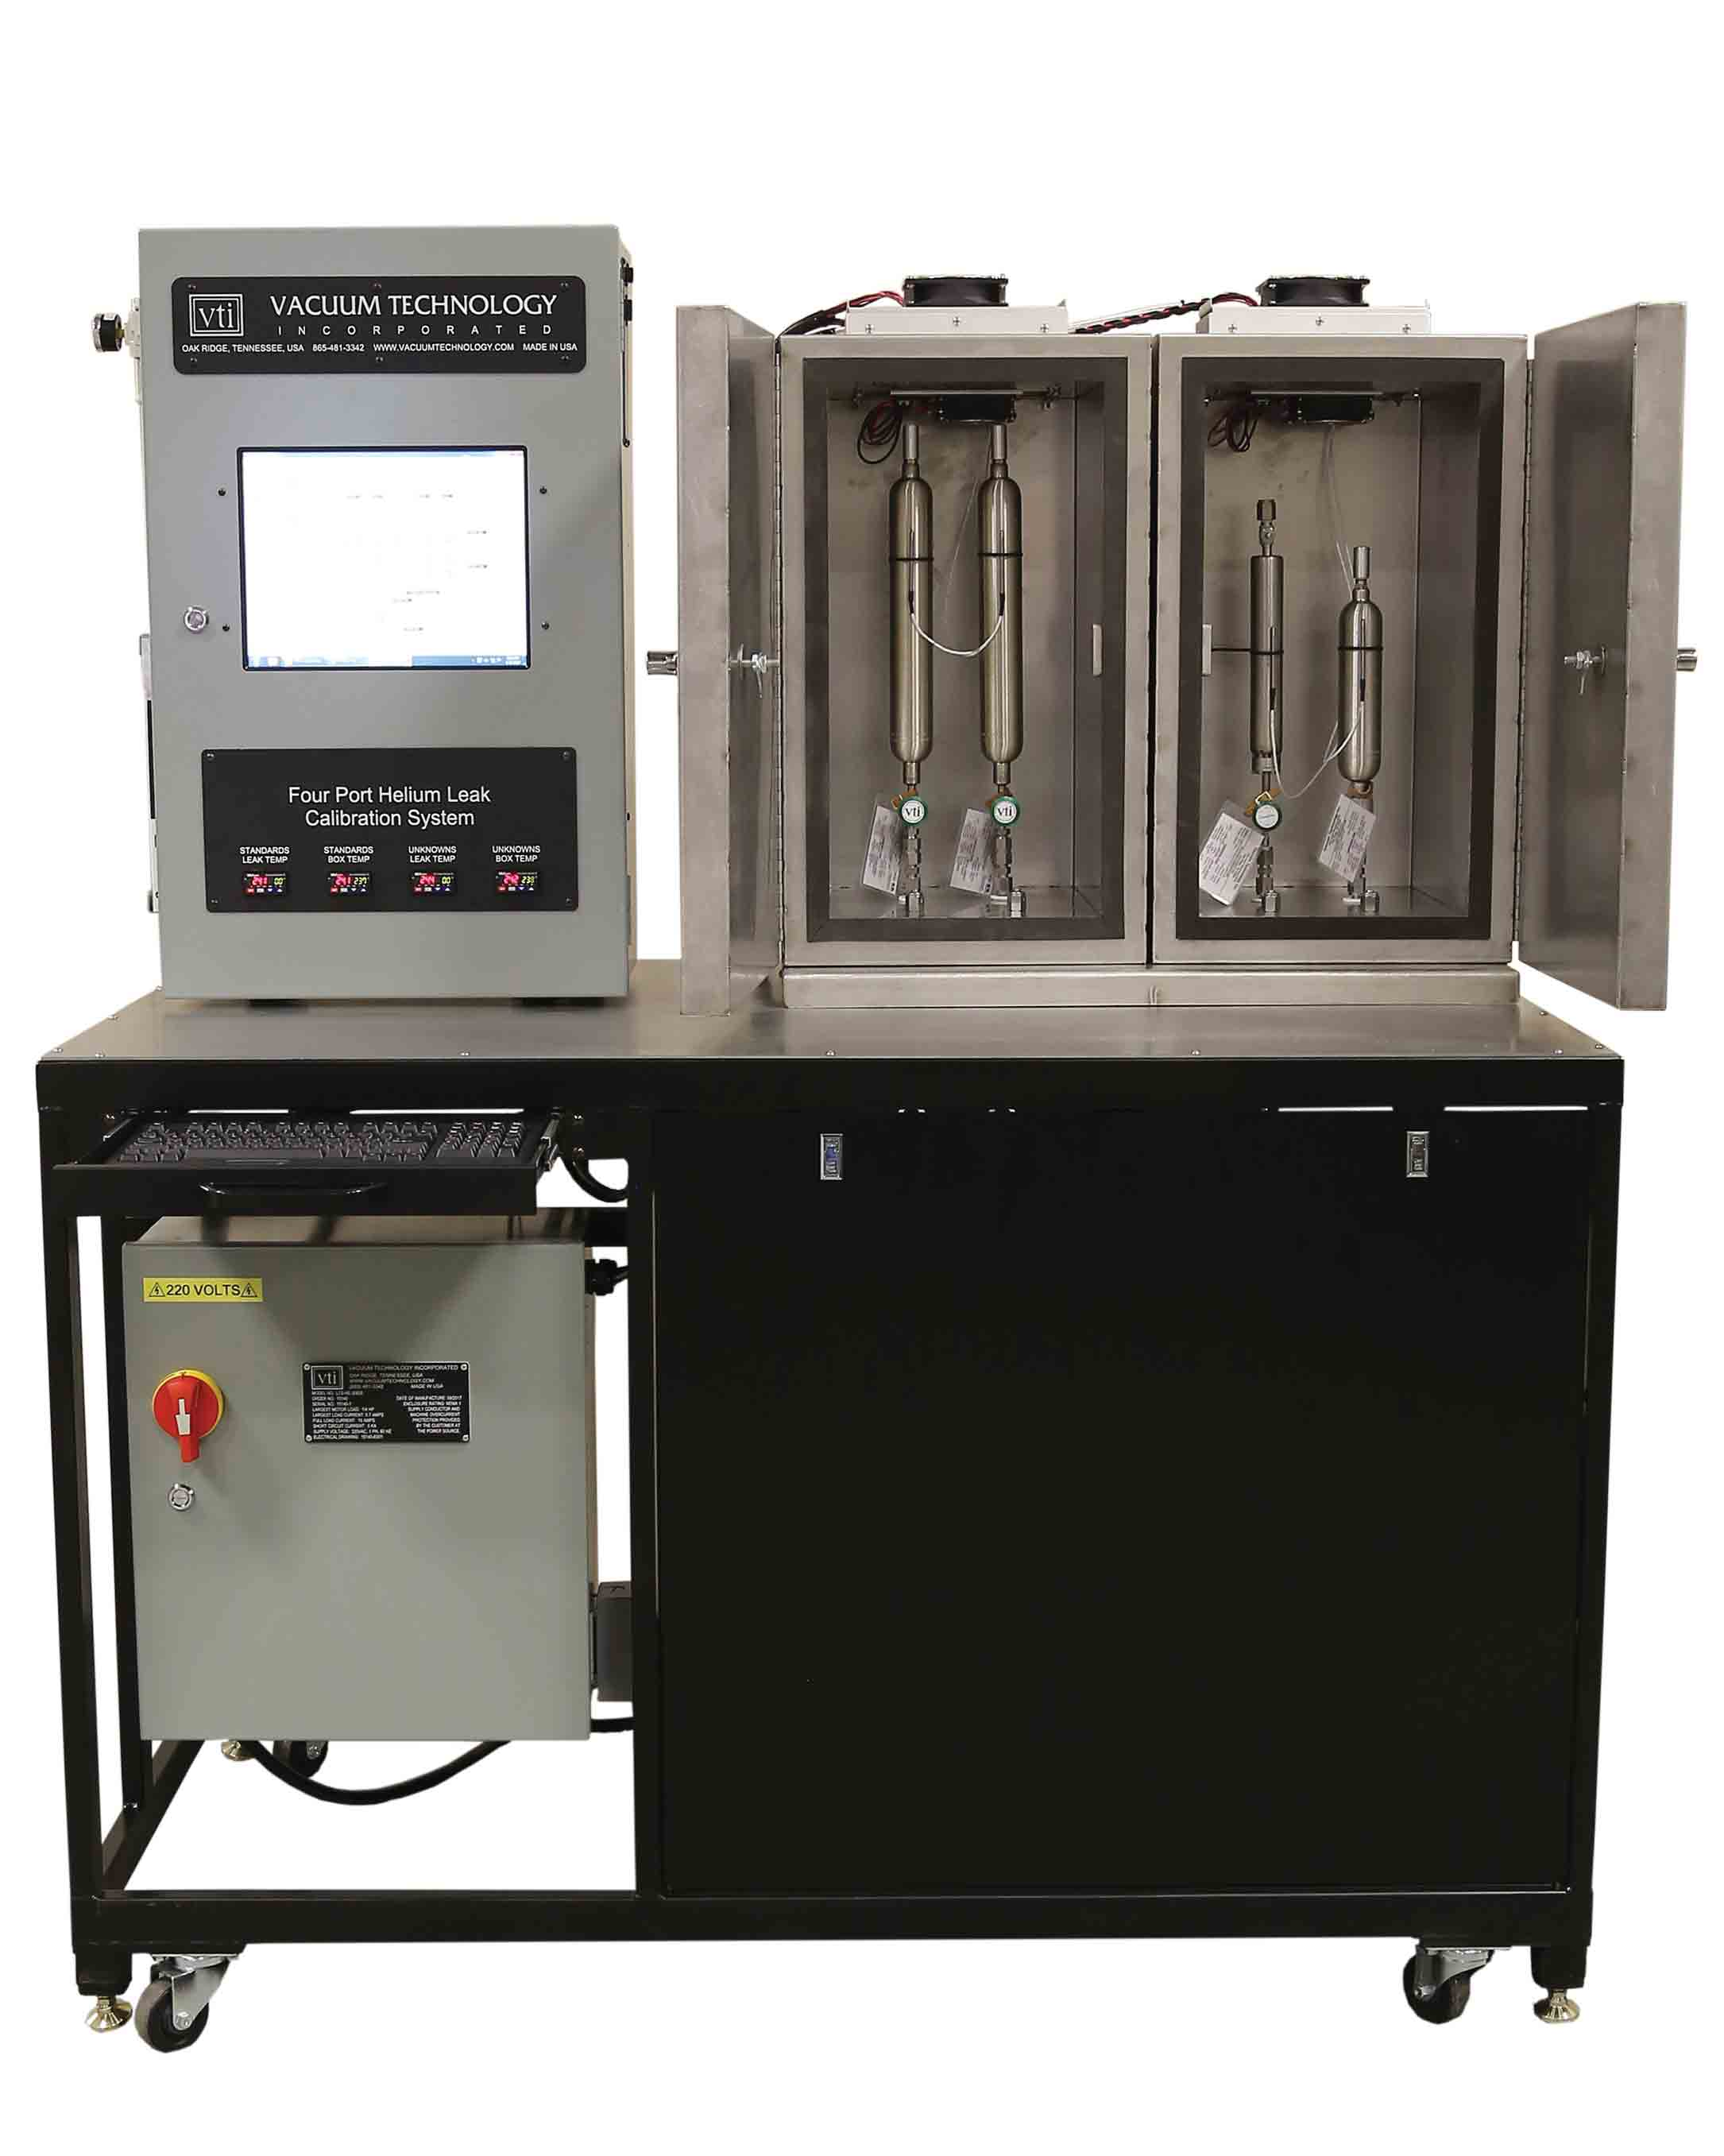 VTI's Four Port Helium Leak Comparison Calibration System